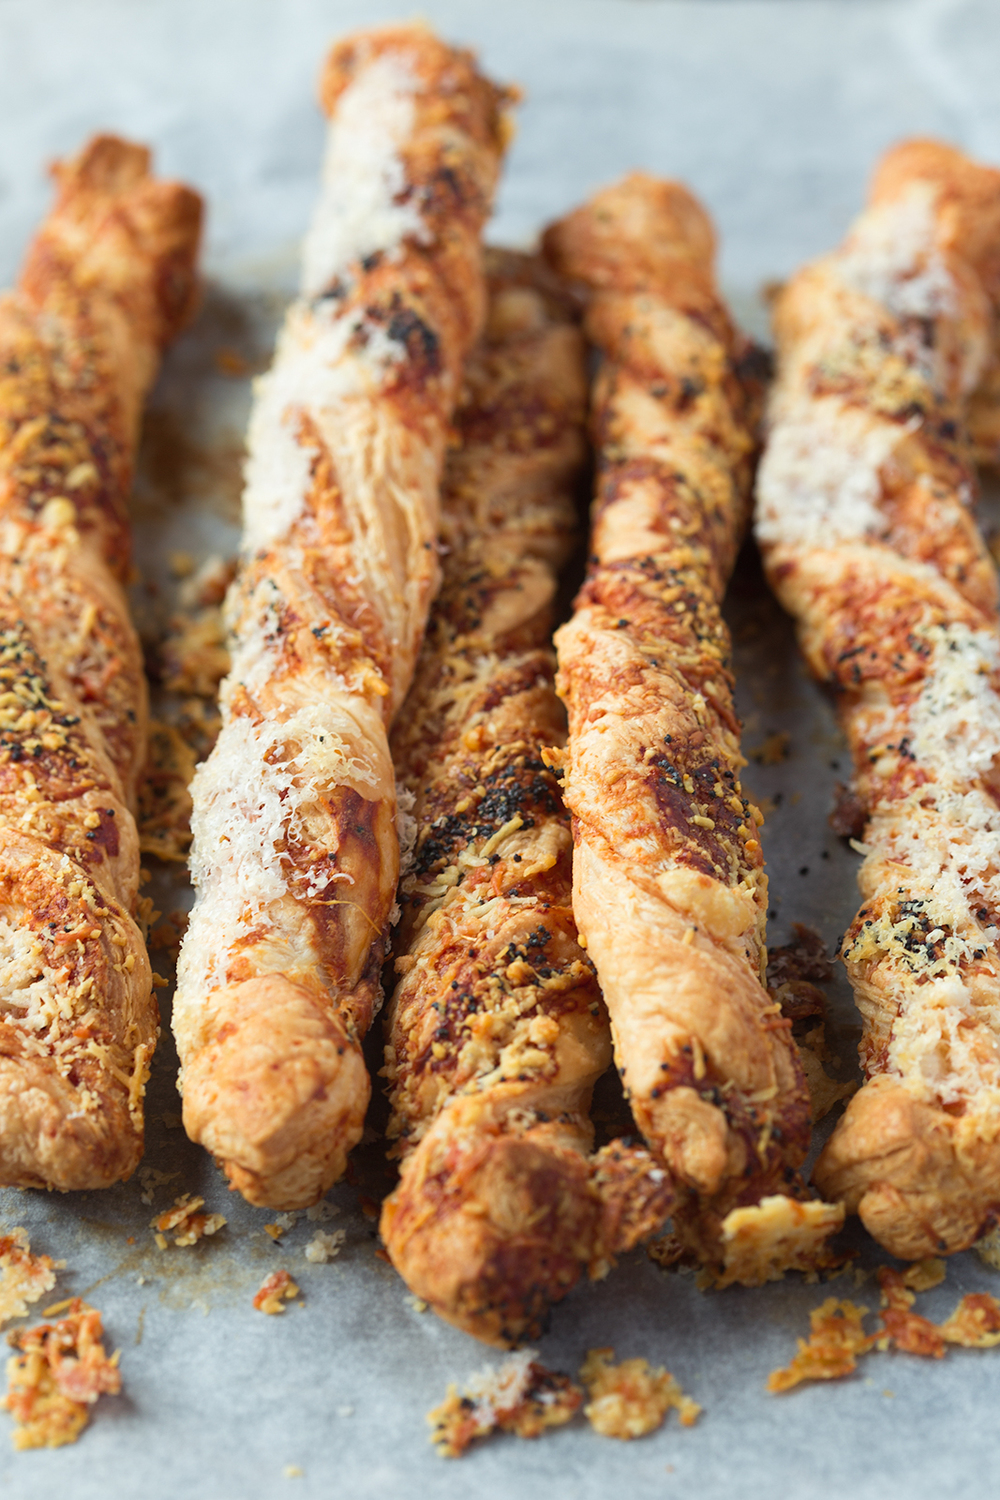 Super cheesy cheese straws 31 May 2015